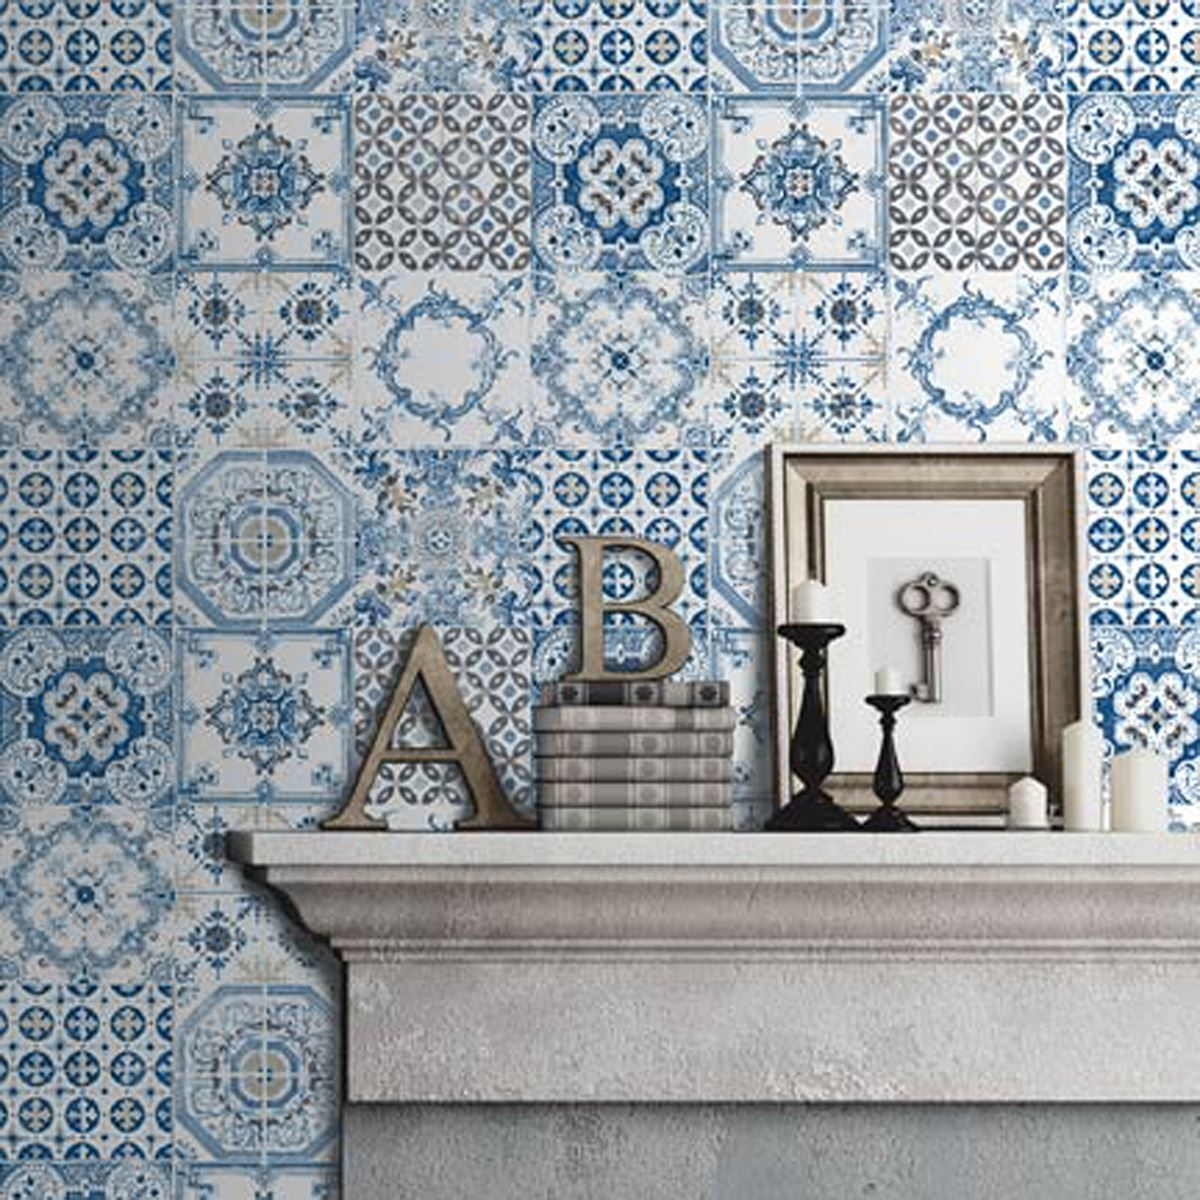 PATTERNED TILES WALLPAPER - CERAMIC, MARBLE, TROPICS BRASILIA ...